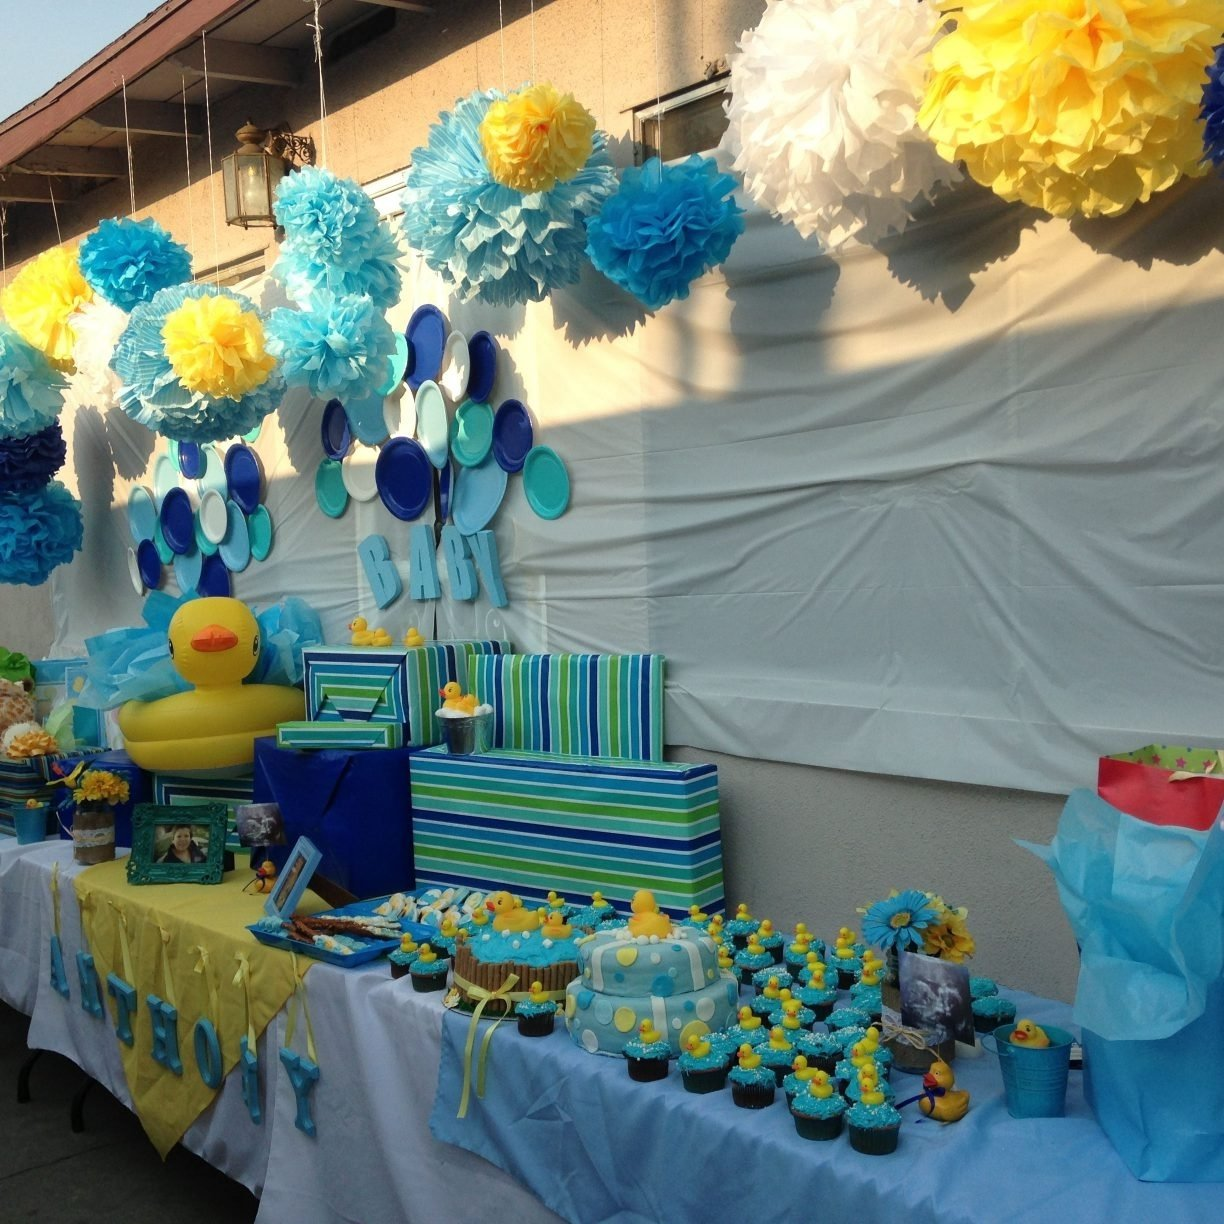 10 Amazing Rubber Duck Baby Shower Ideas maxresdefault wonderful rubber duck baby shower ideas for boy food 2021